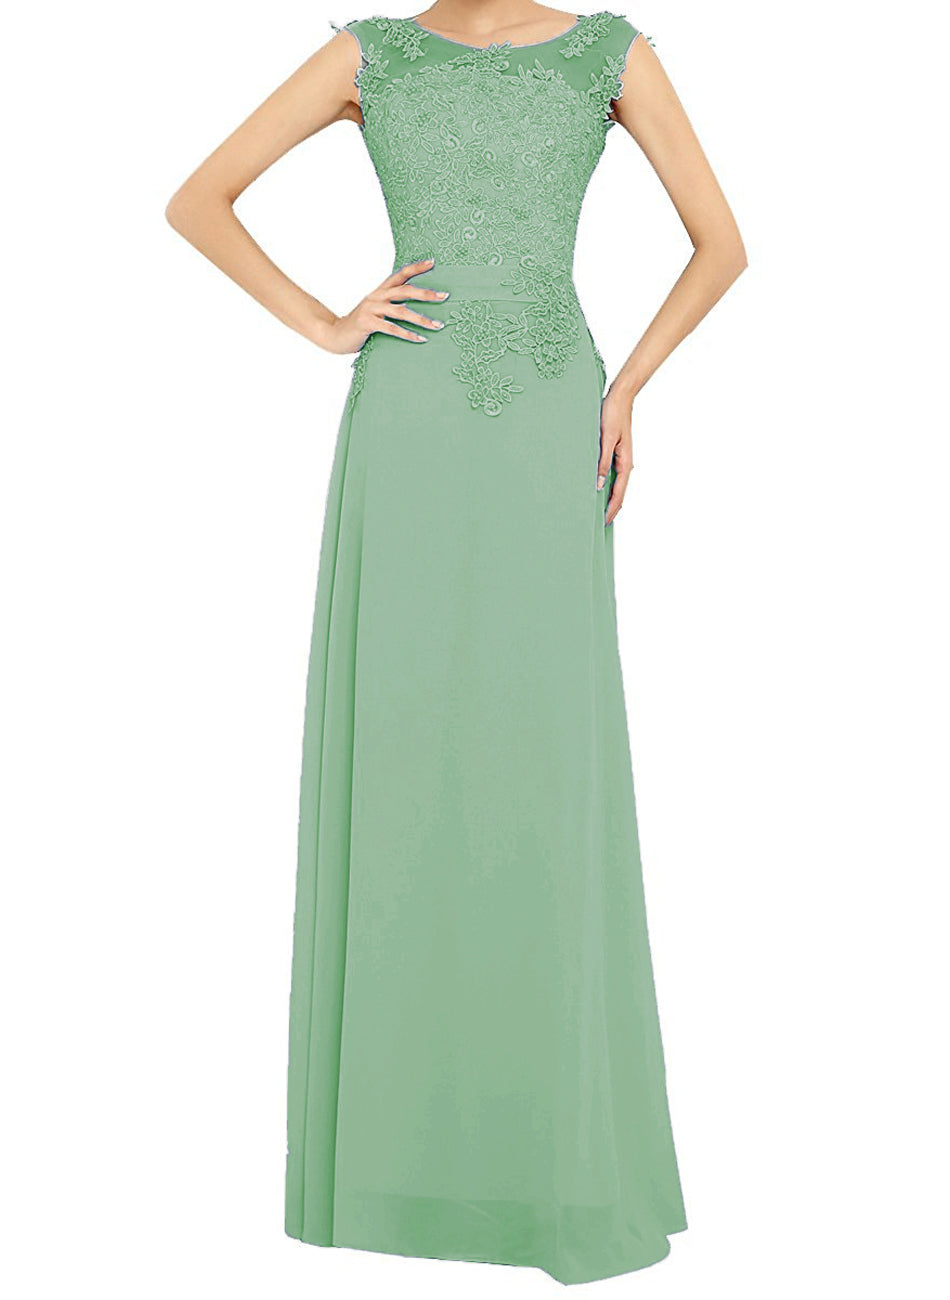 Autumn bamboo sage green  lace chiffon long bridesmaid wedding bridal prom evening ballgown dress loulous bridal boutique ltd uk